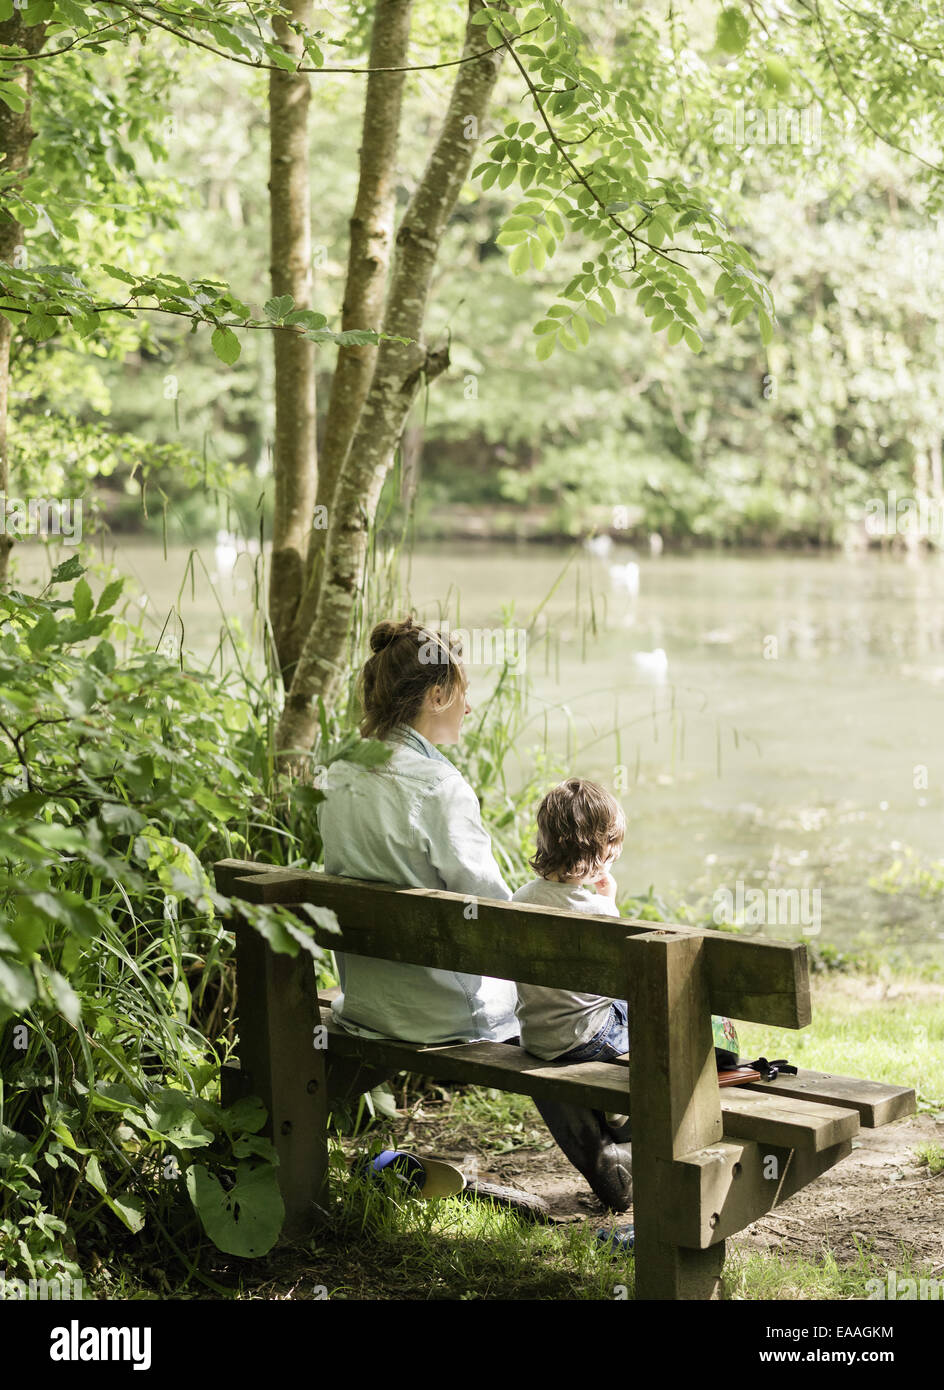 Woman and child sitting on a bench. - Stock Image